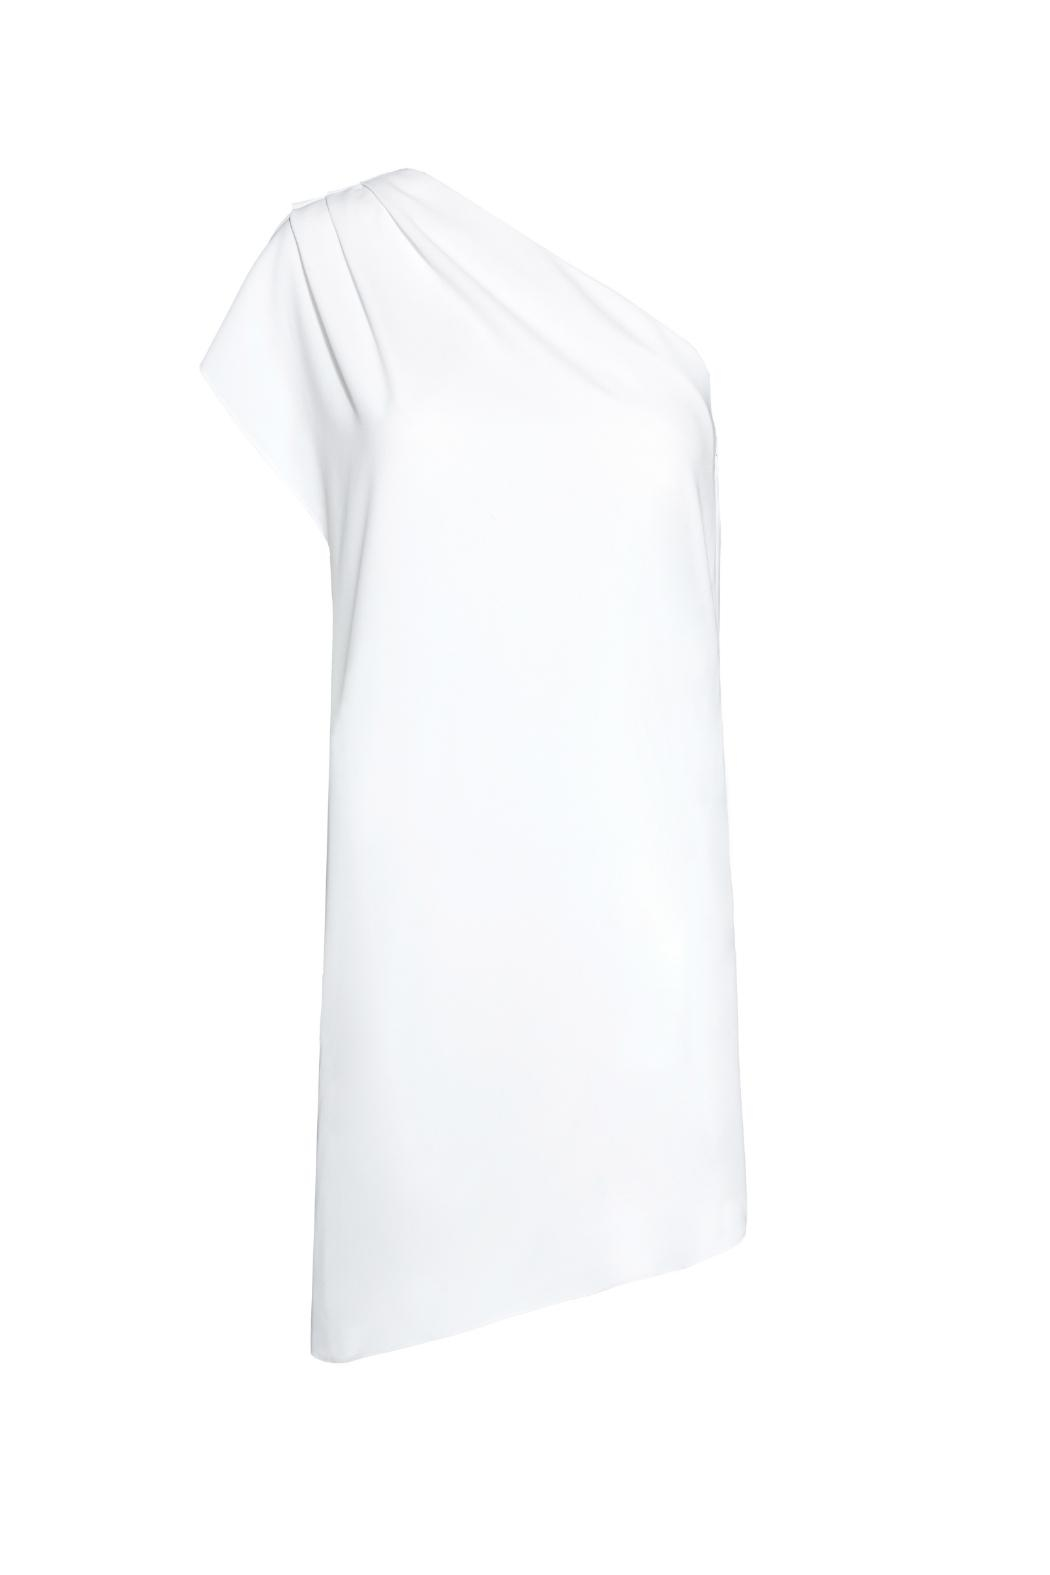 Alice + Olivia Melina One Shoulder Dress - Front Full Image